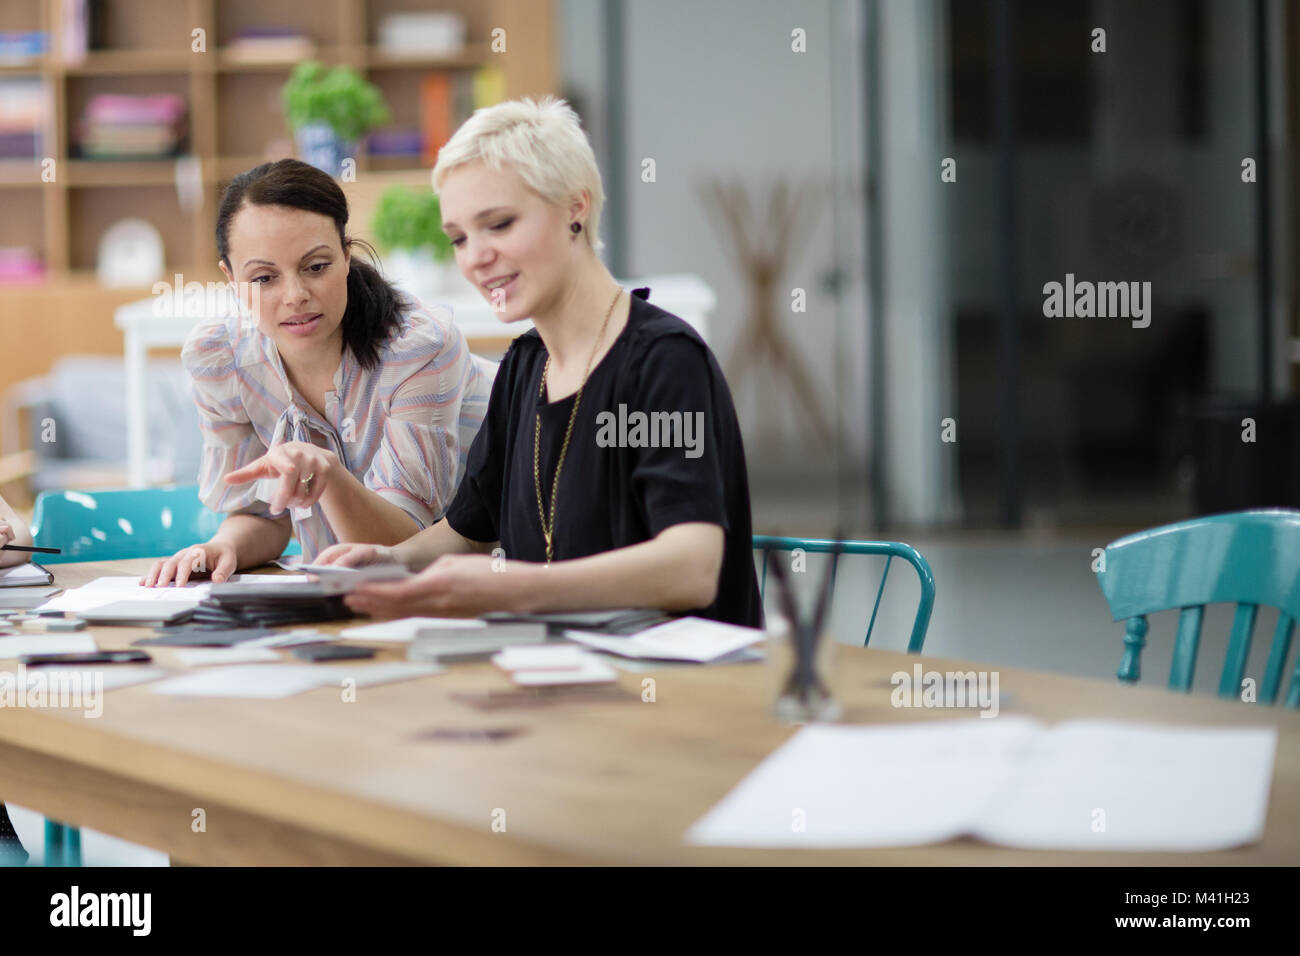 Female designers working on a project - Stock Image